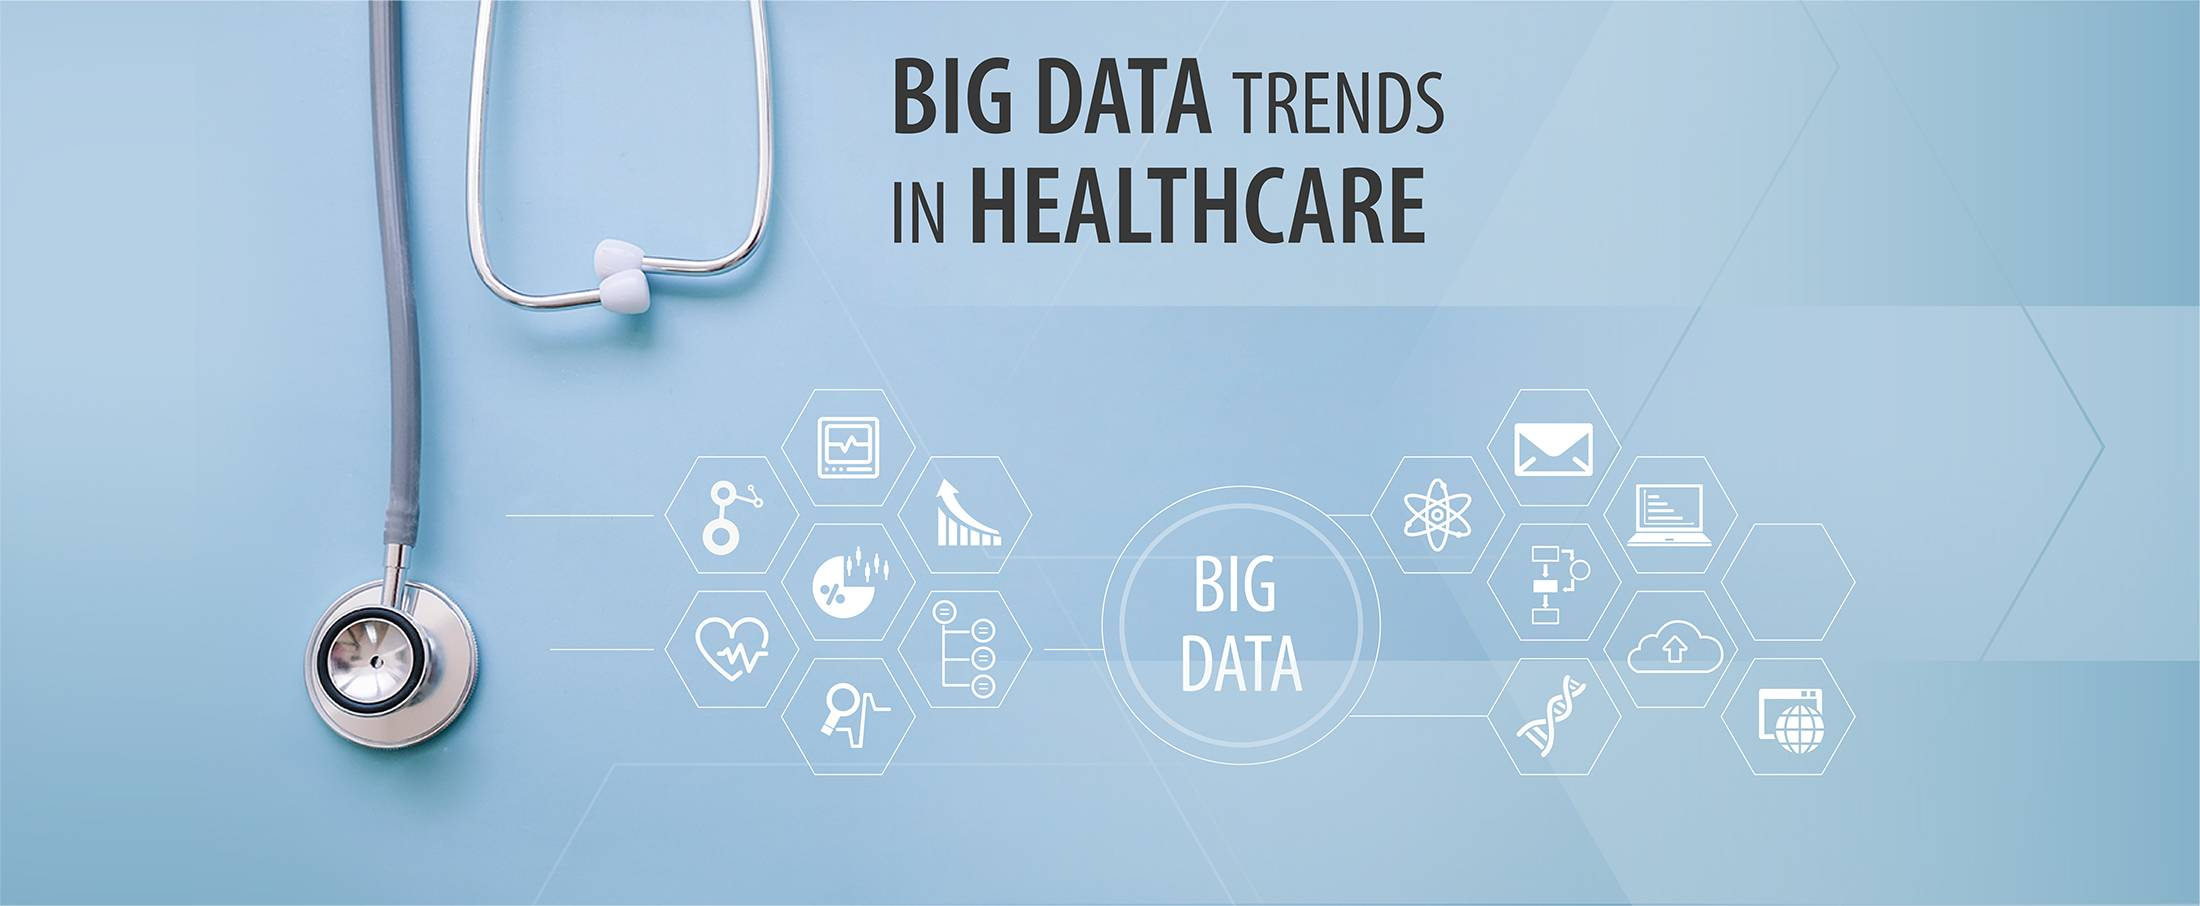 Big Data trends in Healthcare